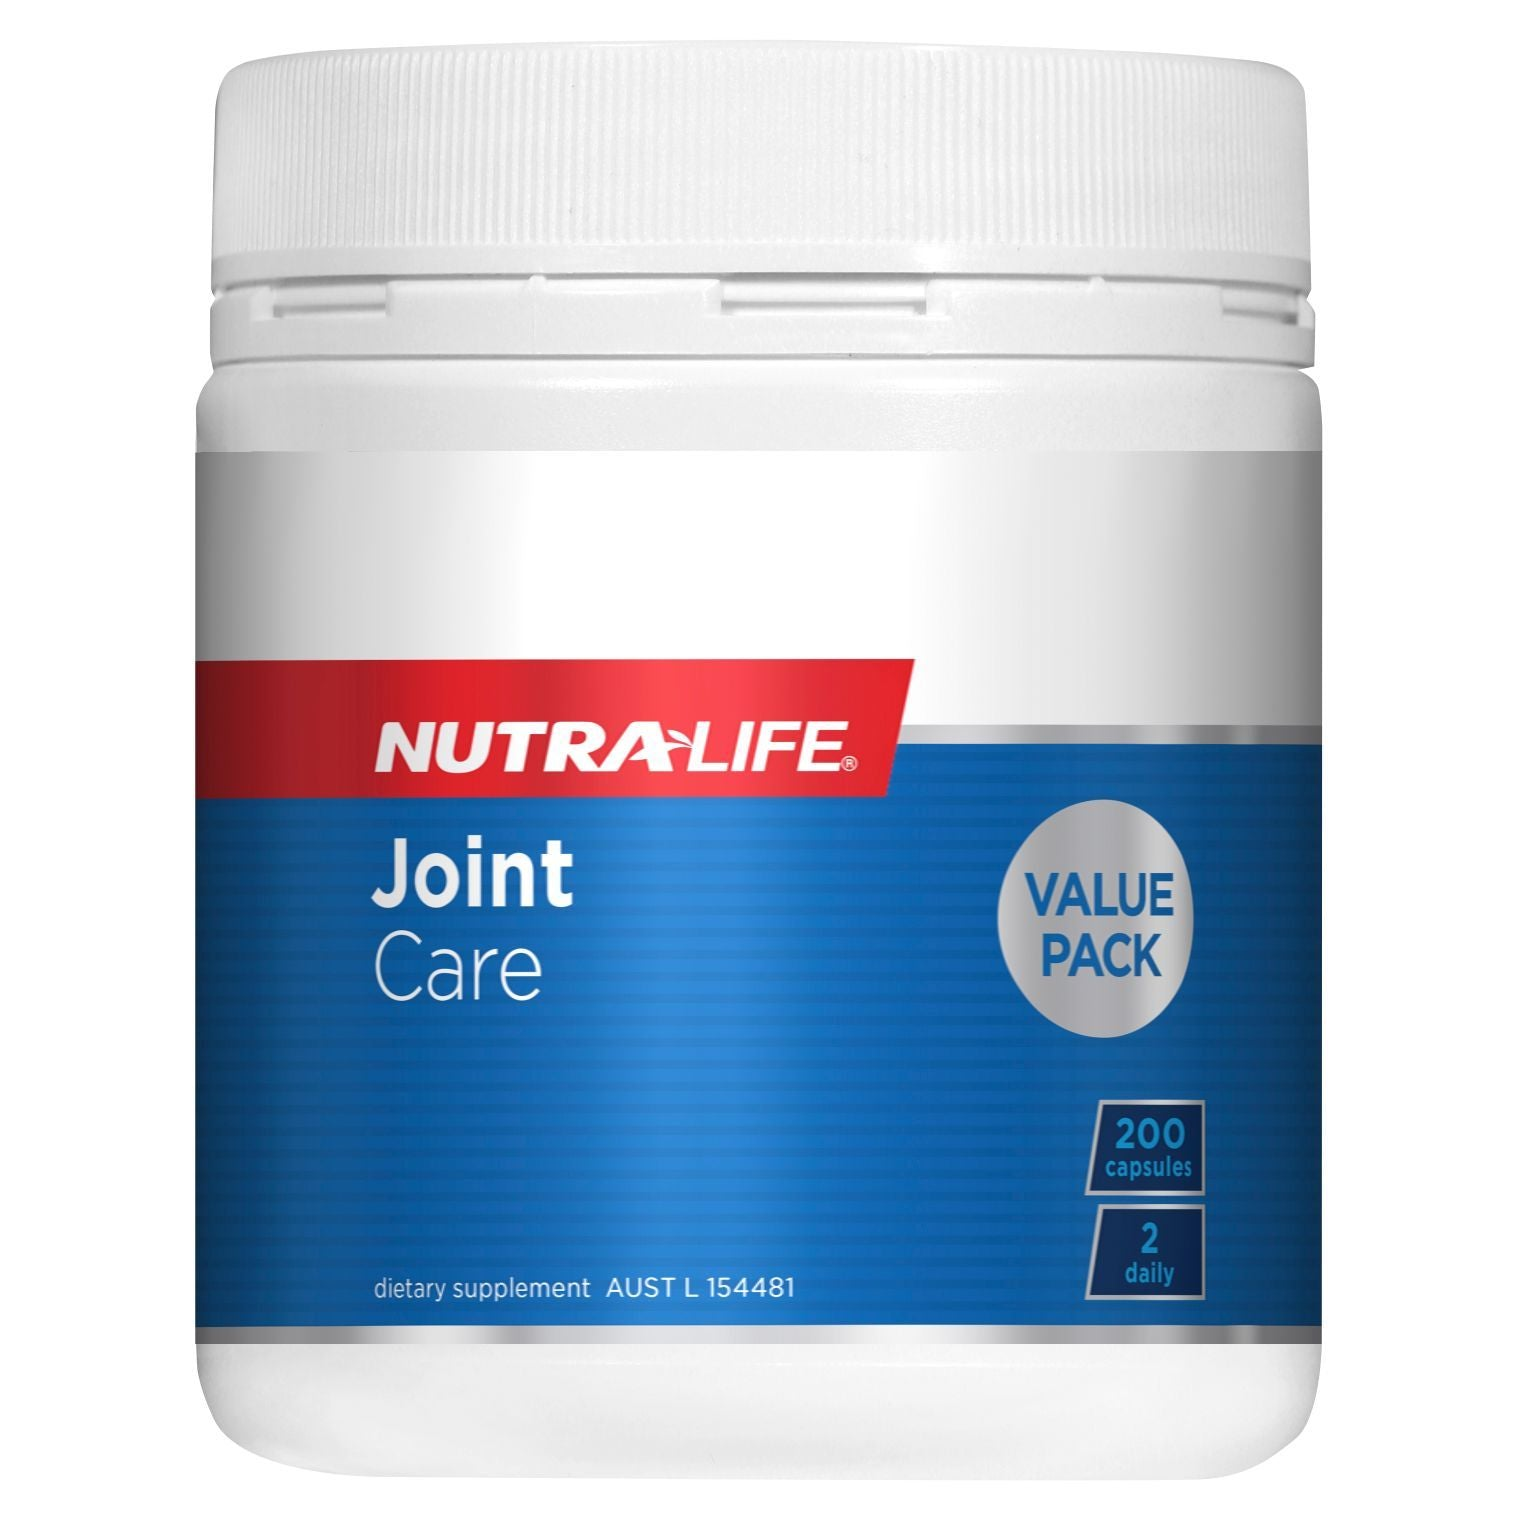 NUTRA-LIFE JOINT CARE 200C